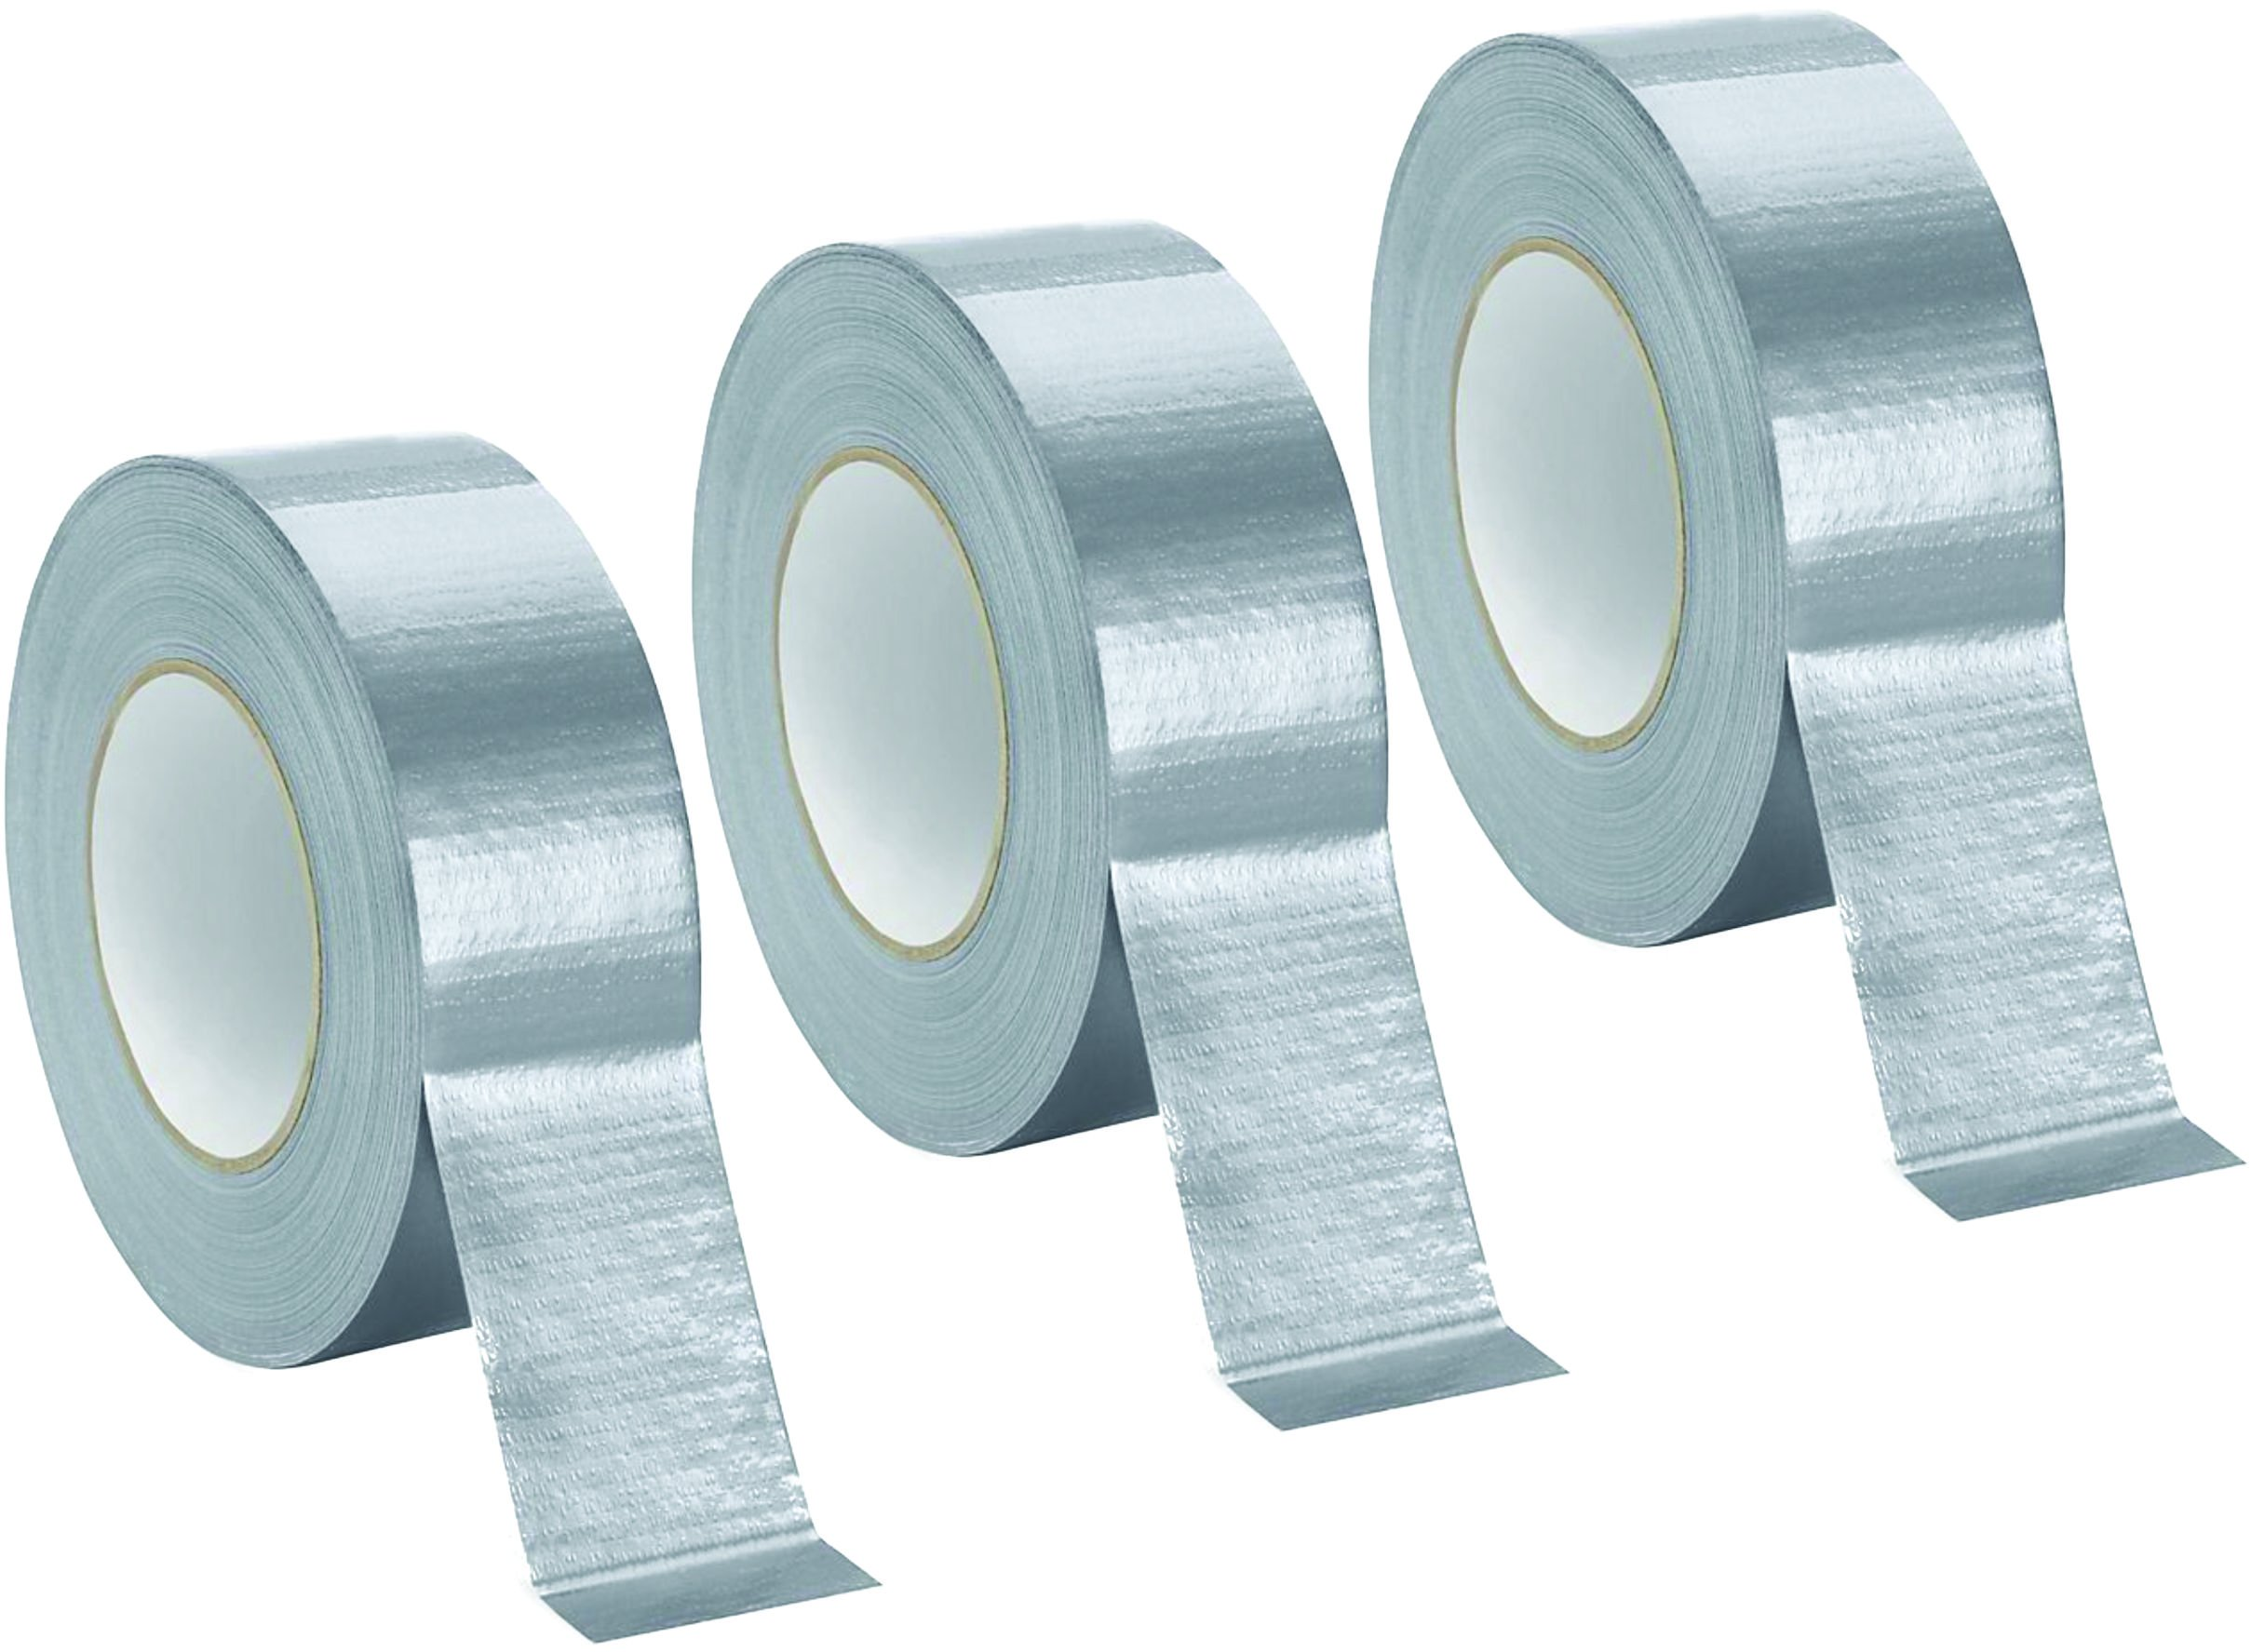 Duct Tape - 975 Supply - Professional Grade - Silver Color - (1.89 inch x 60 Yards) - 48mm x 55m - Tear by Hand Design - No Residue - All Weather - USA Seller (3 Rolls)